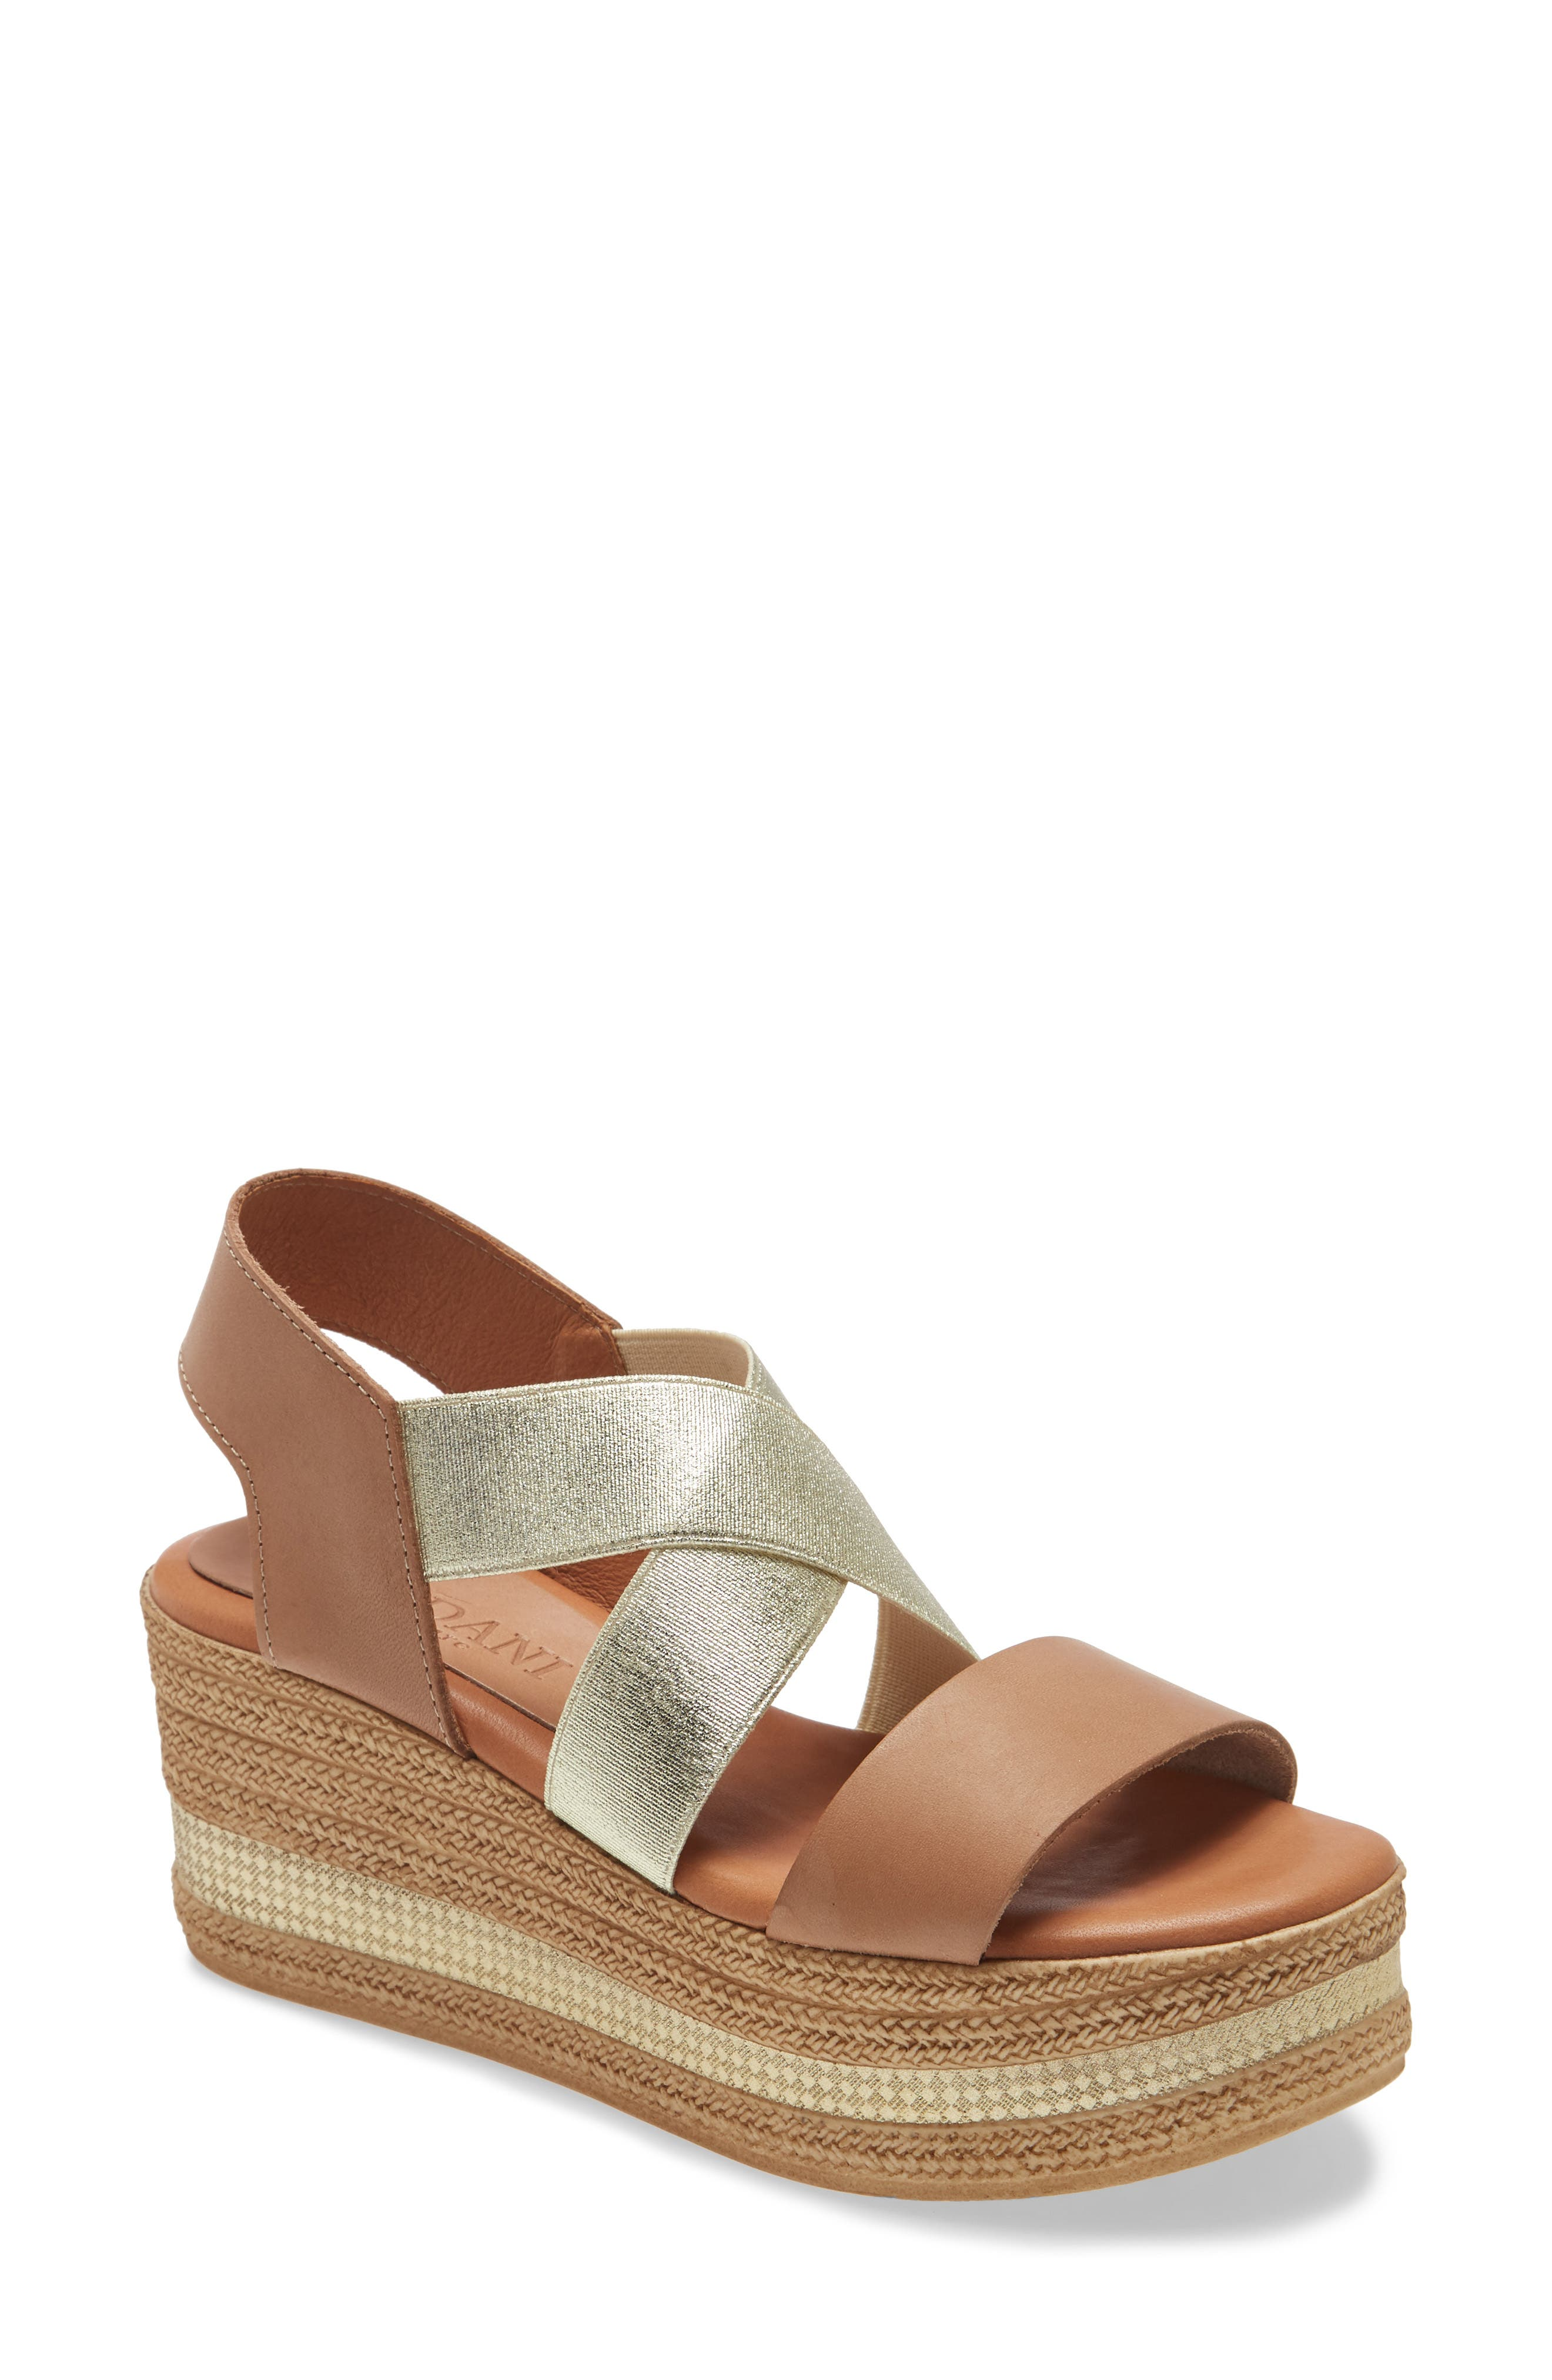 Crisscrossed elastic straps perfect the fit of a plushly cushioned sandal lifted by a textured platform wedge ringed with a metallic accent. Style Name: Cordani Barnaby Wedge Sandal (Women). Style Number: 5789042 1. Available in stores.